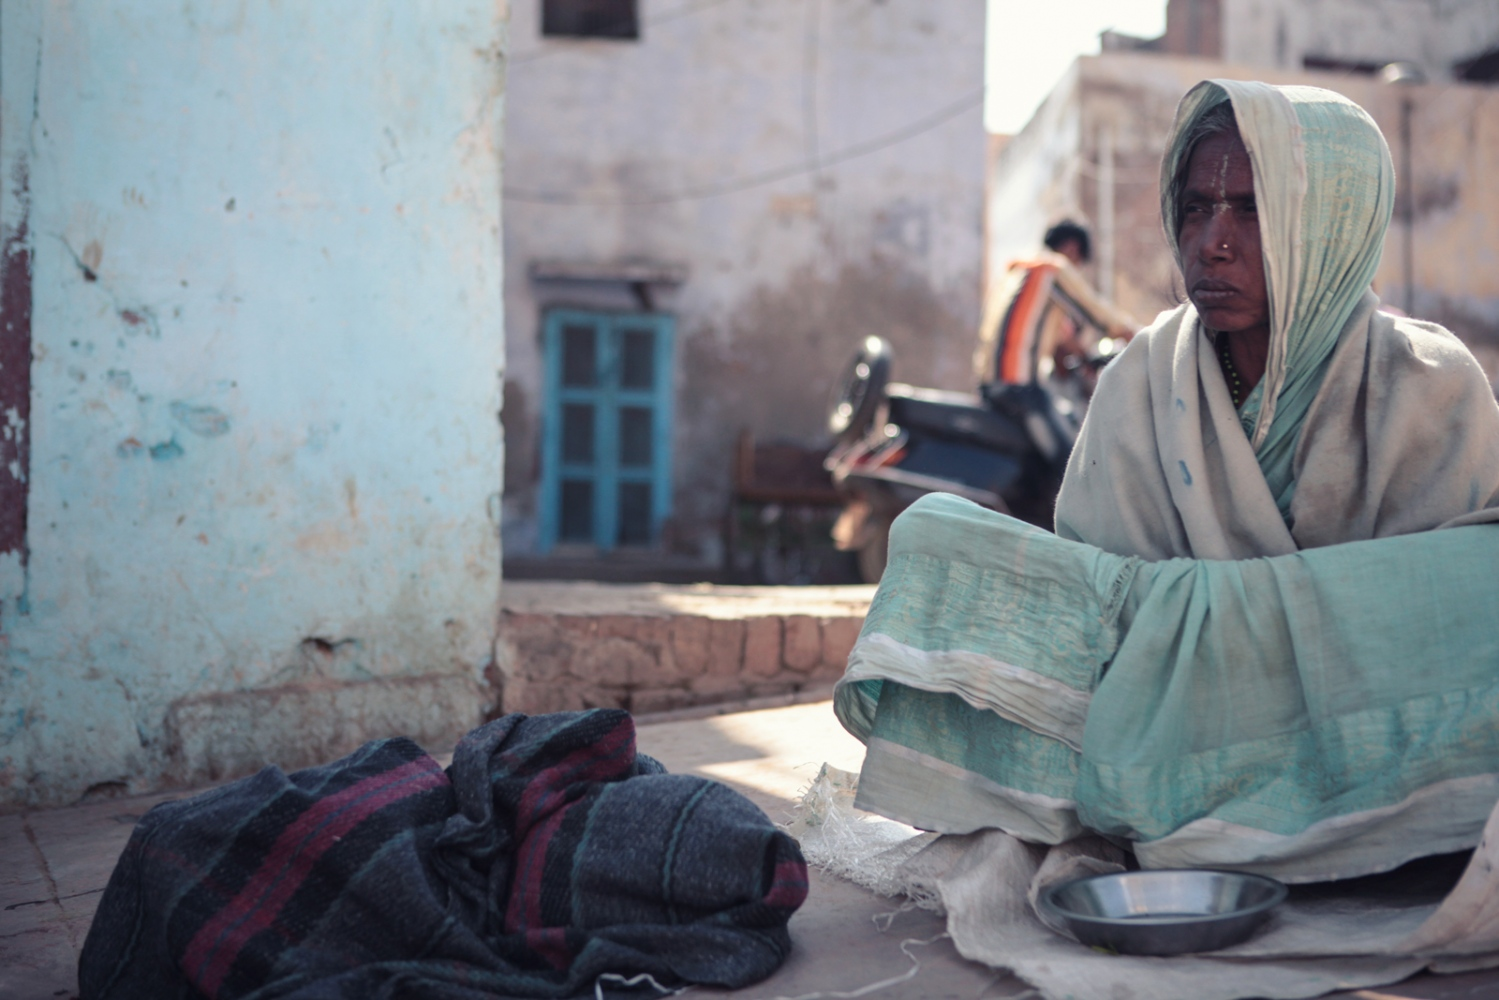 """The daily earnings of six rupees fail to support a living, leaving the widows no recourse but to beg on the streets. """"The Bhajan Ashrams are getting twenty times the amount they distribute,"""" said a resident of Vrindavan, who did not want to be named."""